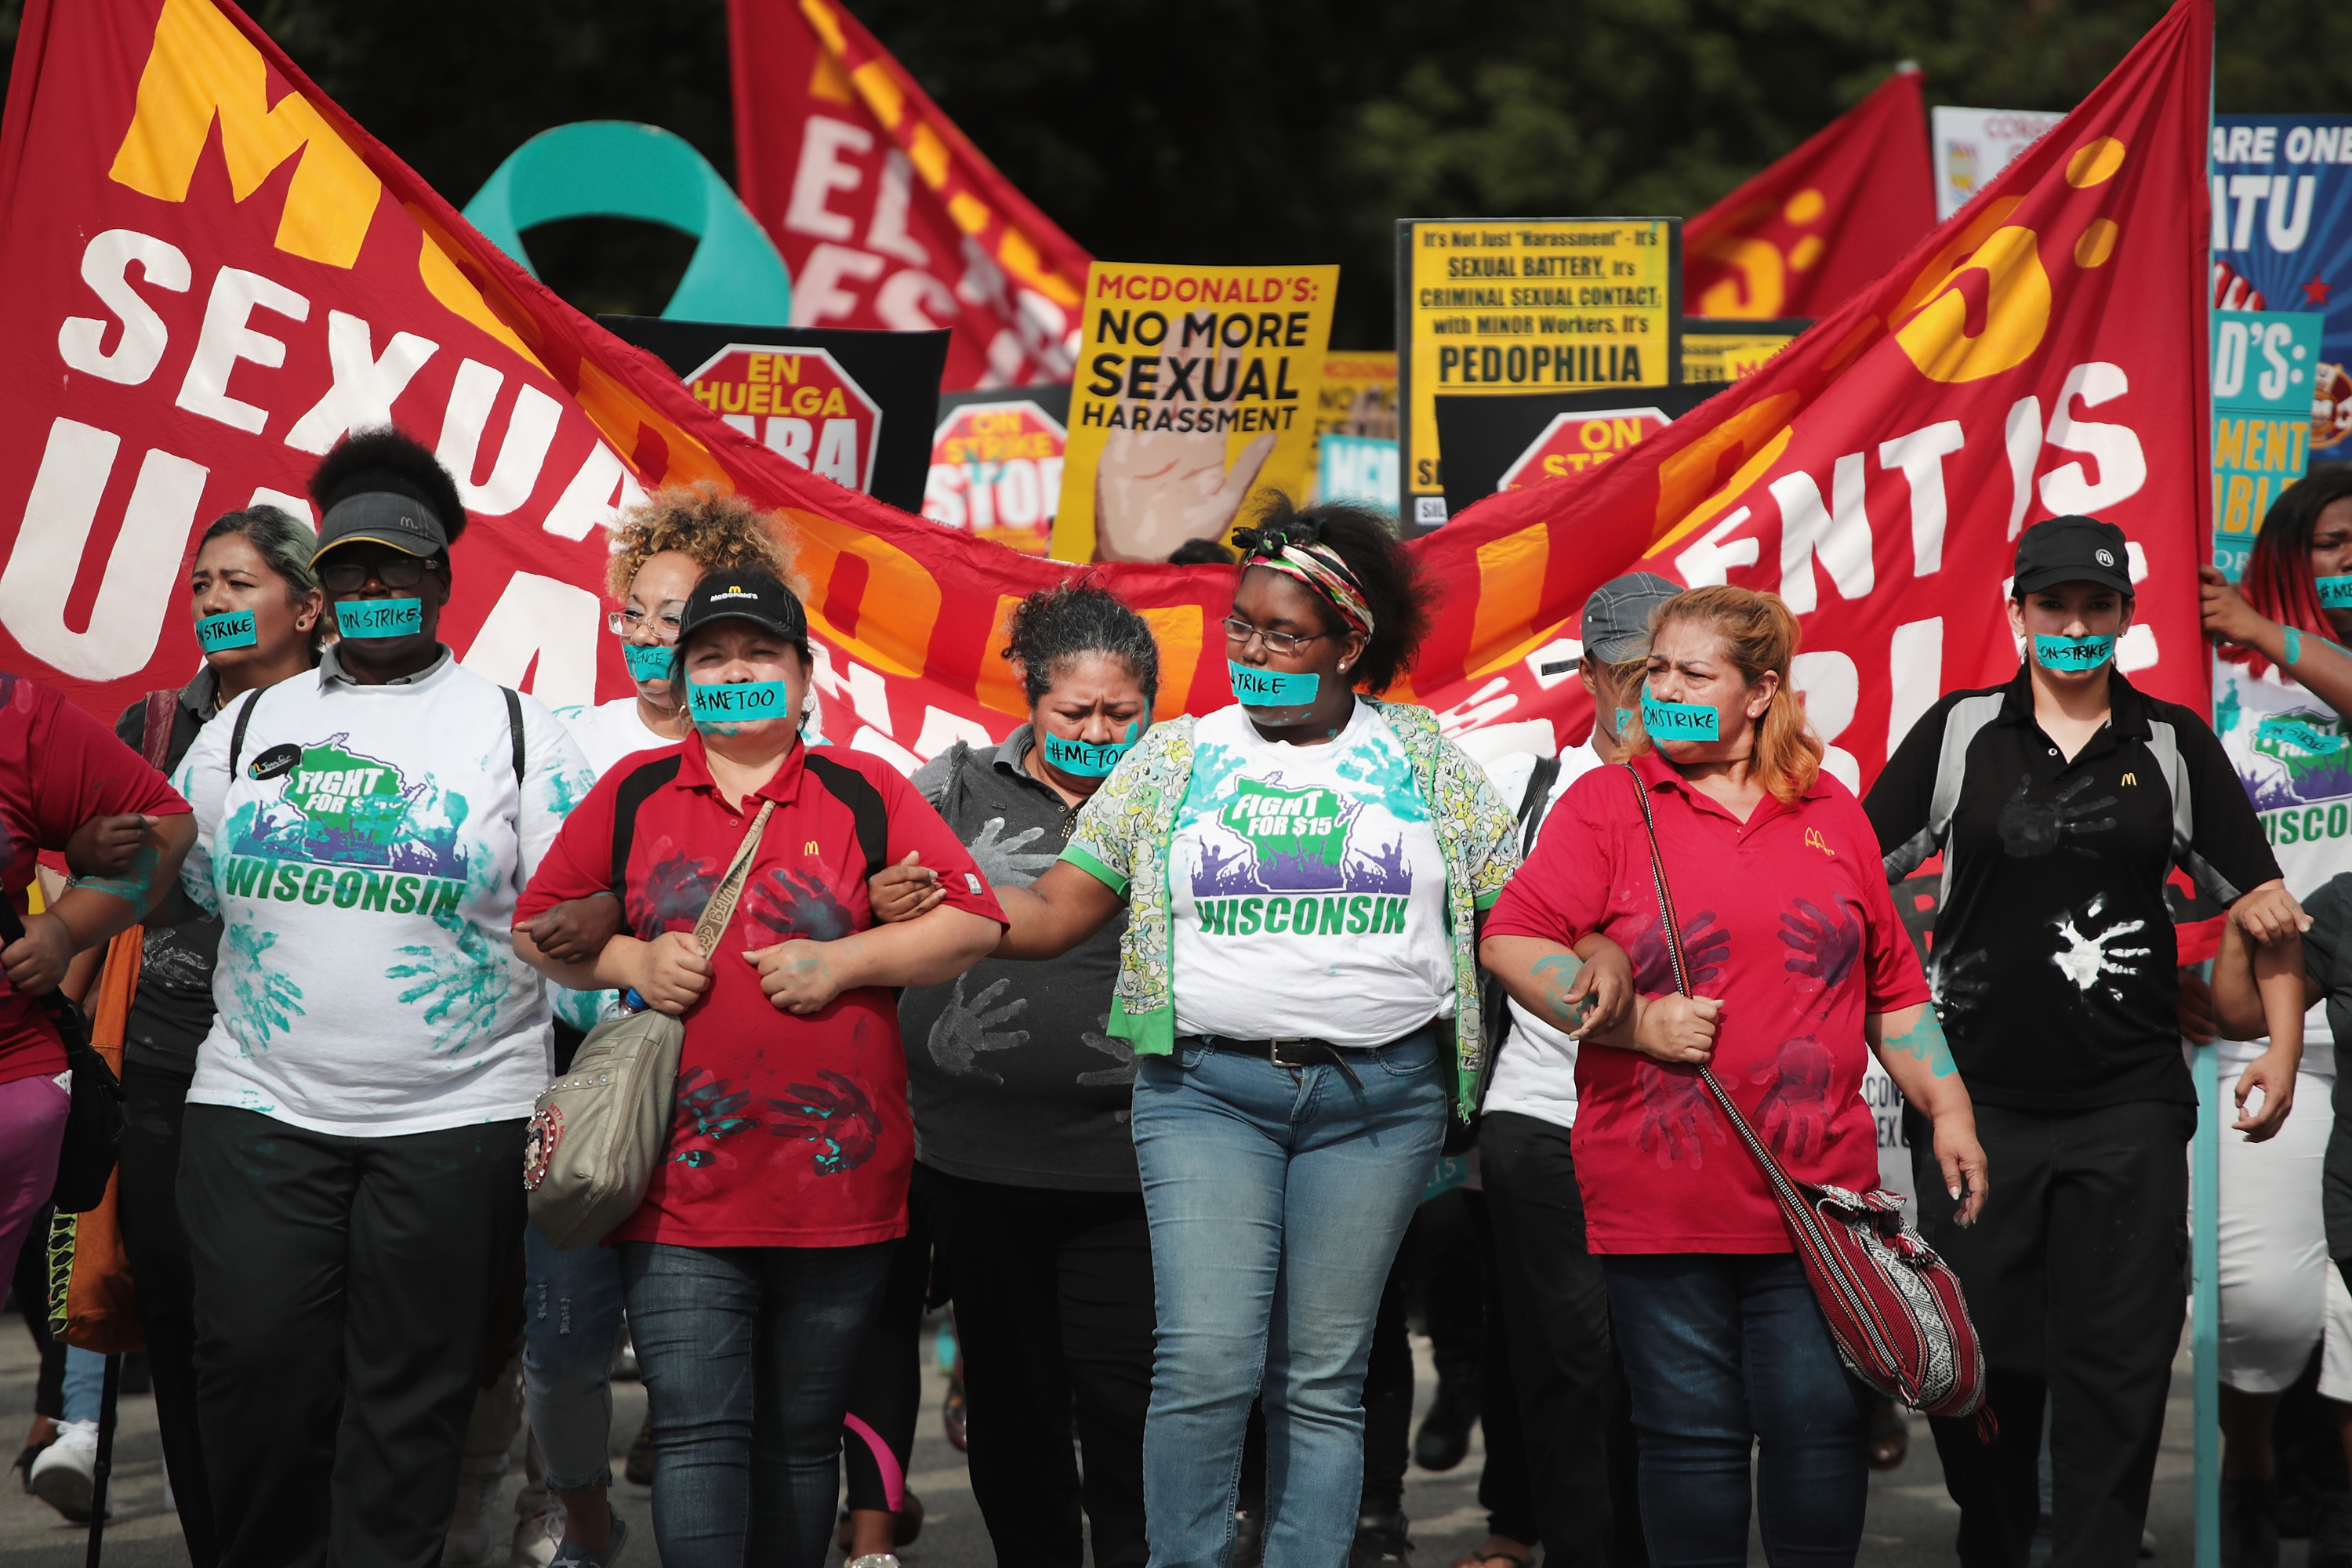 McDonald's workers are joined by other activists as they march toward the company's headquarters to protest sexual harassment at the fast food chain's restaurants in Chicago, Ill. on Sept. 18, 2018.